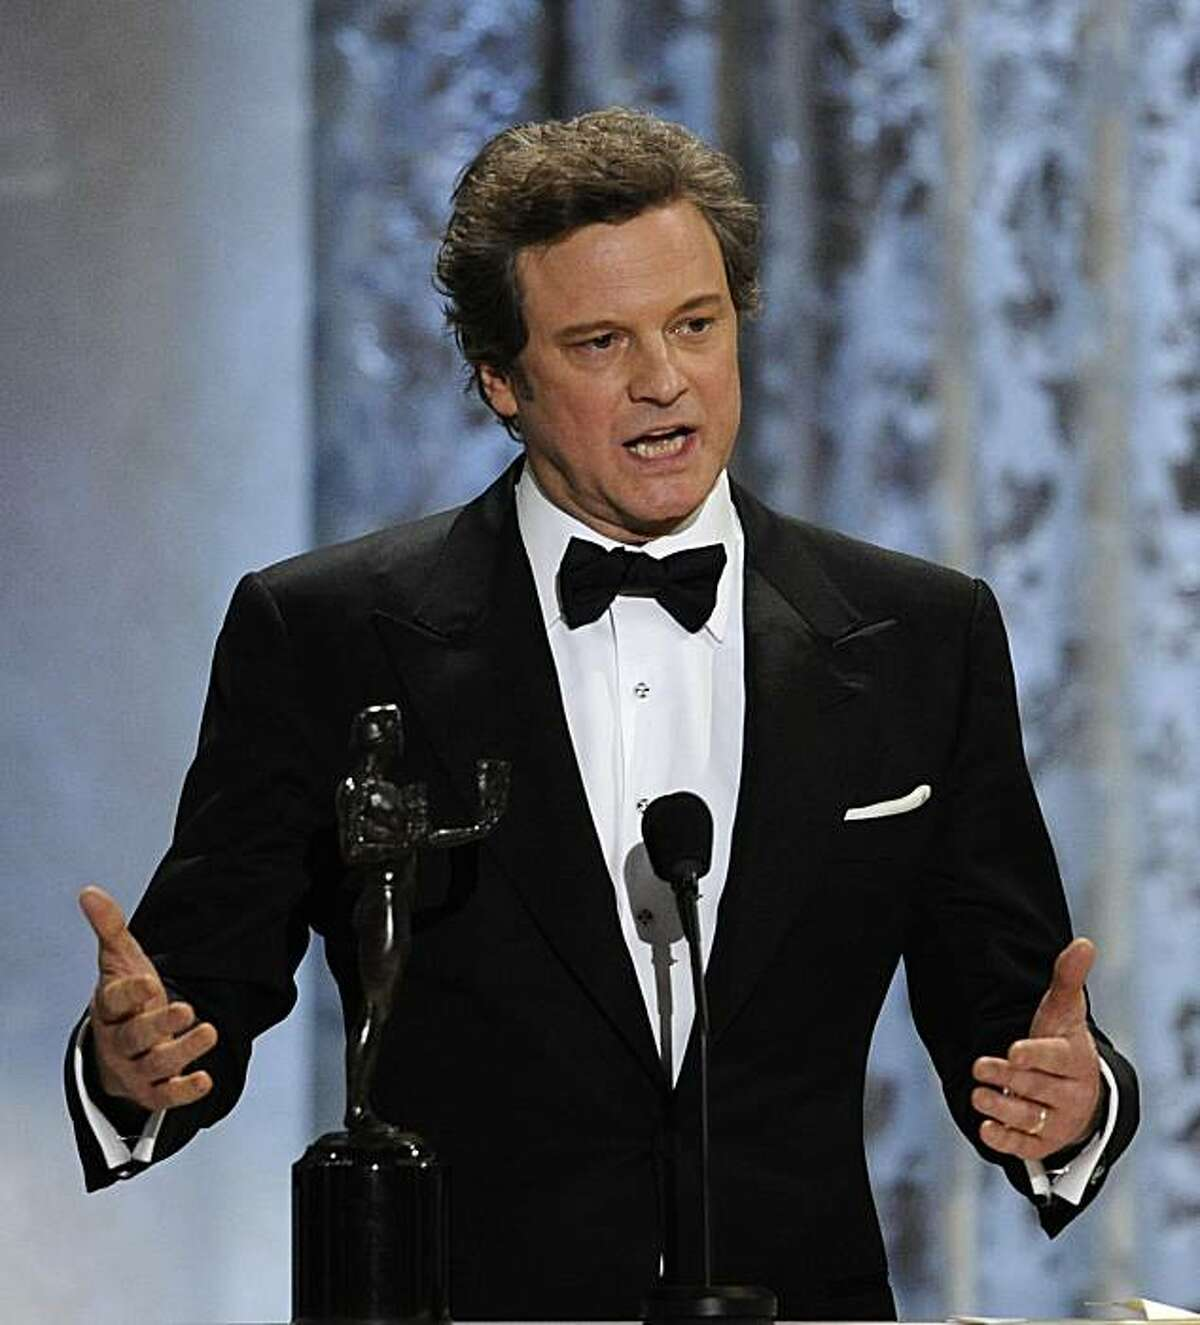 Colin Firth accepts the award for best male actor in a leading role for